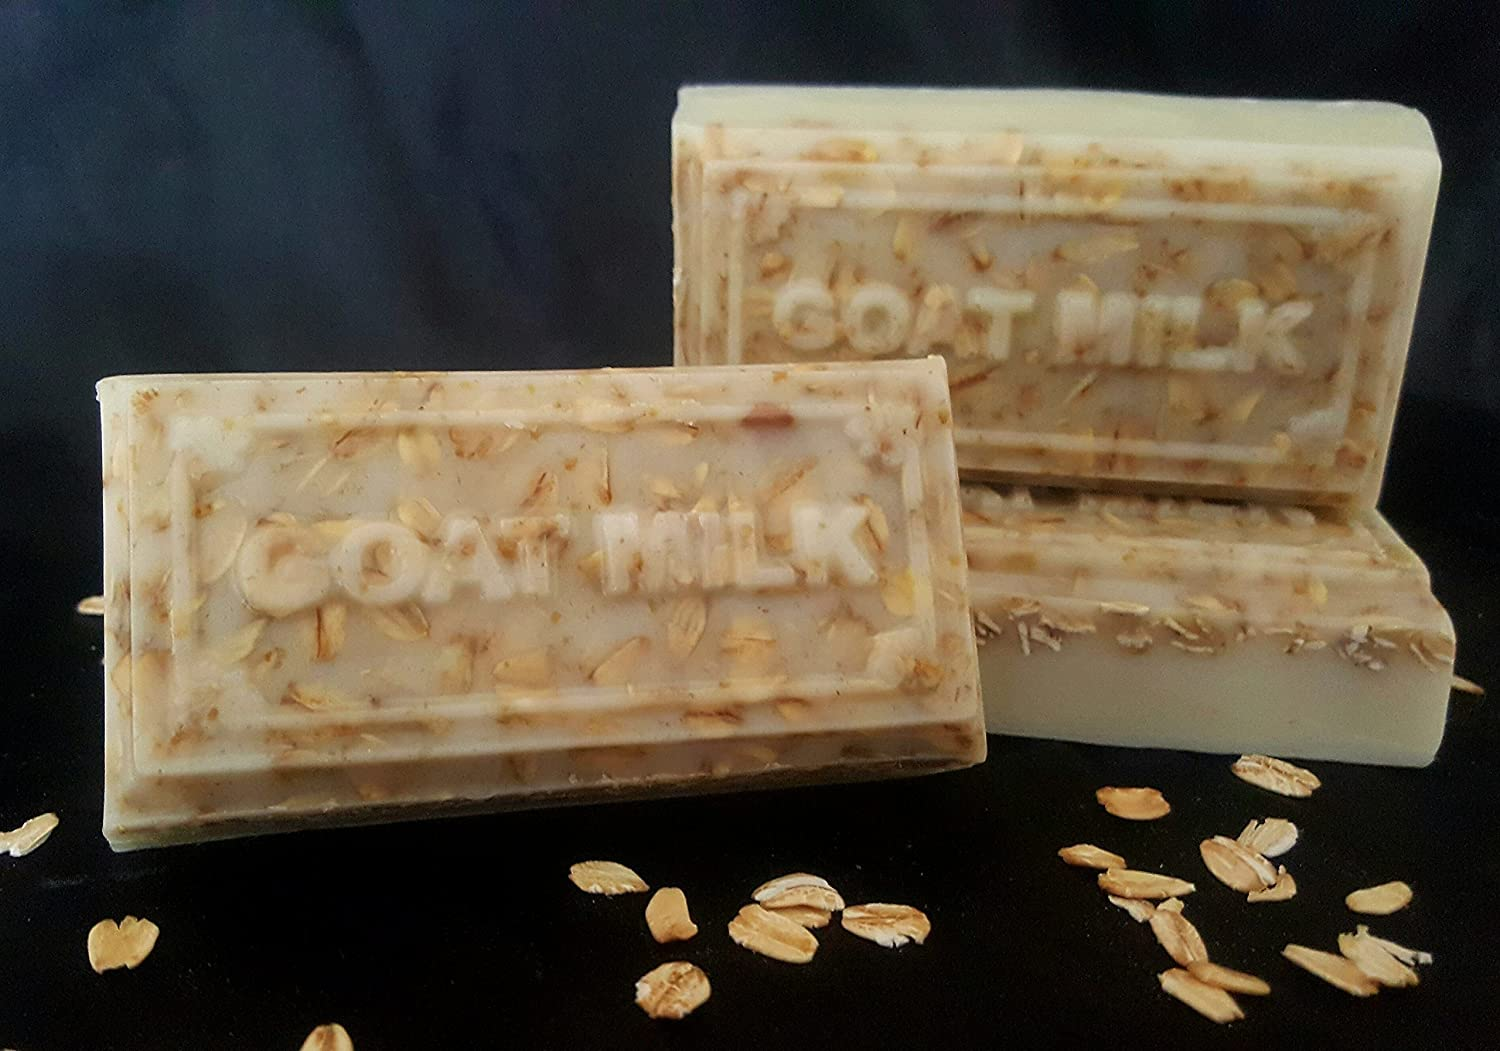 Pack of 4, All Natural Soaps Moisturizing No Harsh Chemicals, made with real ingredients, Goat Milk & Oatmeal, Shea Butter & Organic Extra Virgin Olive Oil, ...